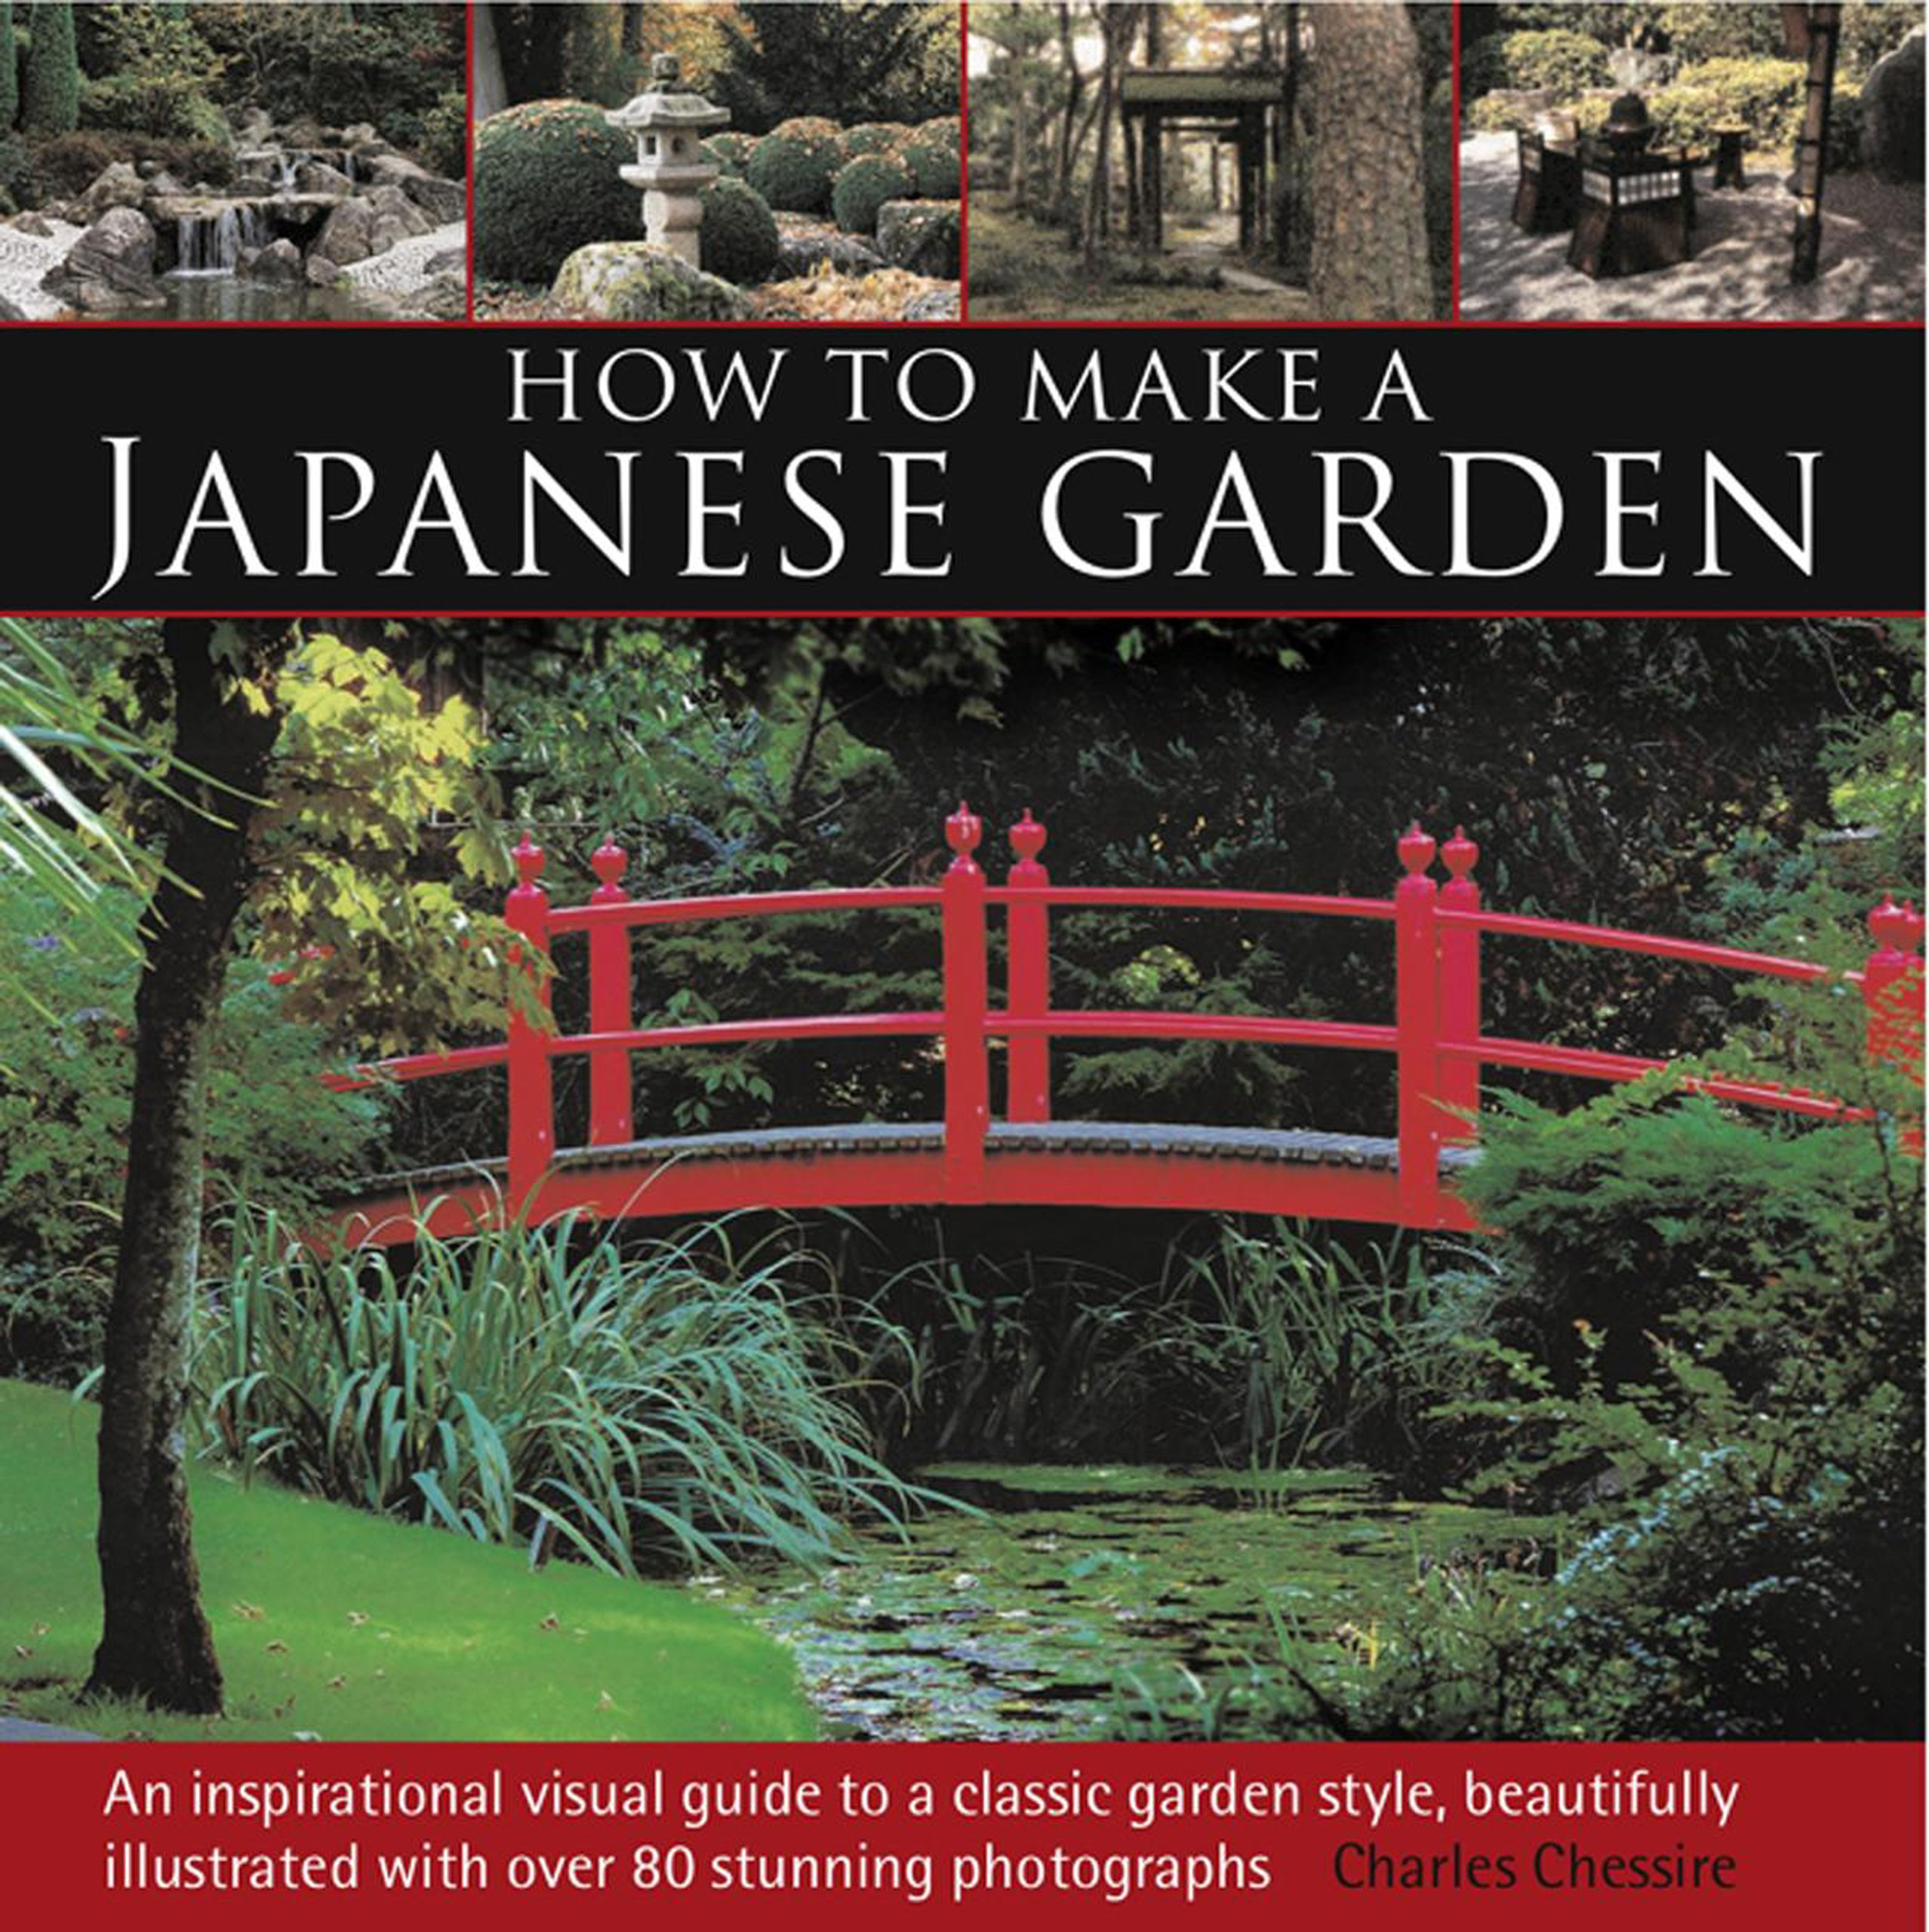 How To Make A Japanese Garden: An Inspirational Visual Guide To A Classic  Garden Style, Beautifully Illustrated With Over 80 Stunning Photographs:  Charles ...